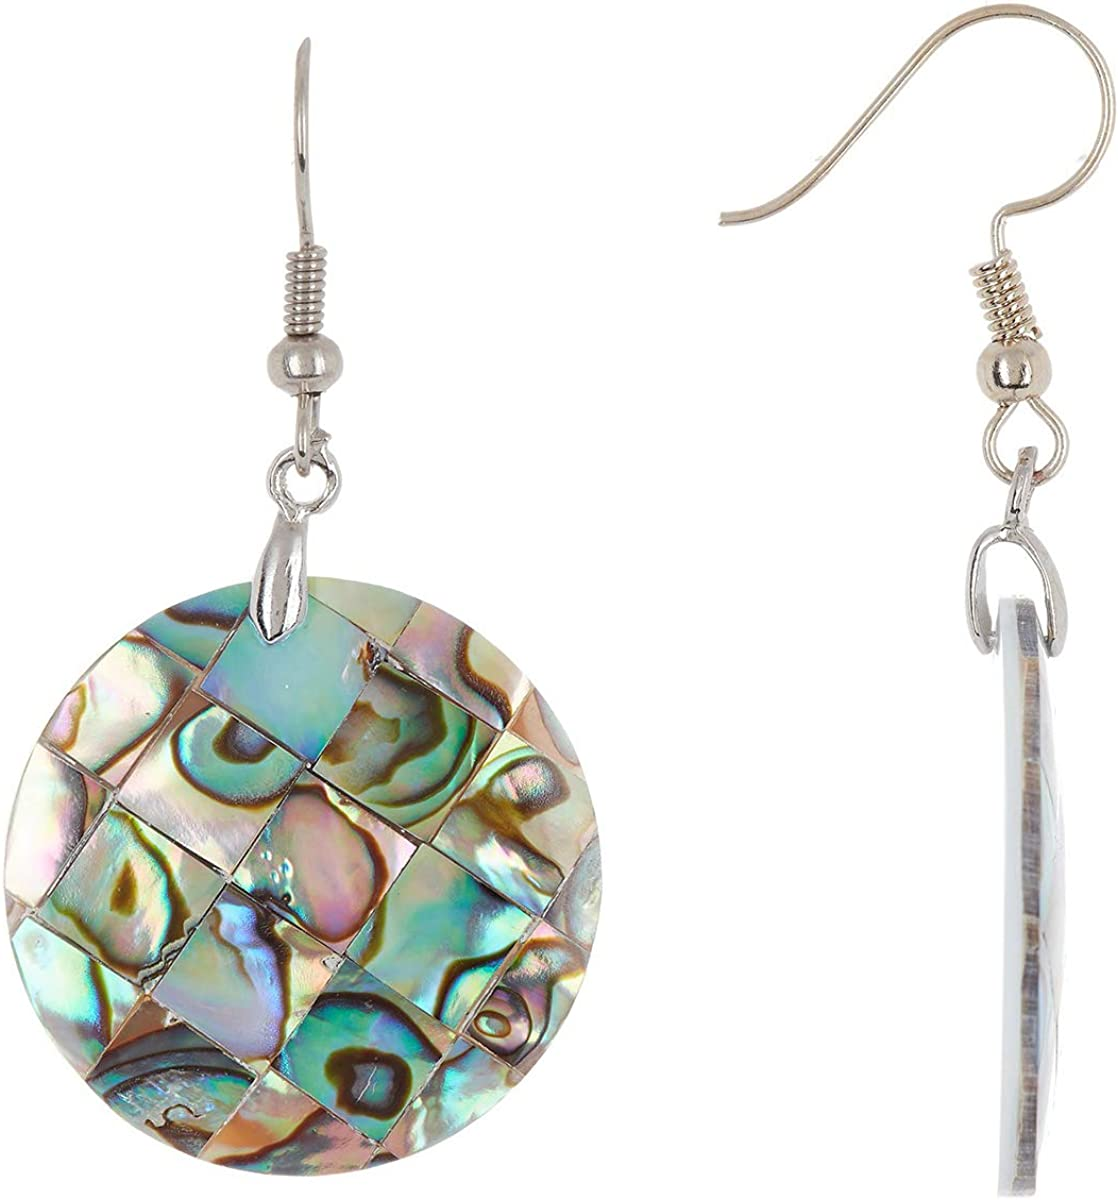 Sterling Silver With Abalone /& Mother Of Pearl Wholesale Gemstone Fashion Jewelry Drop Earrings